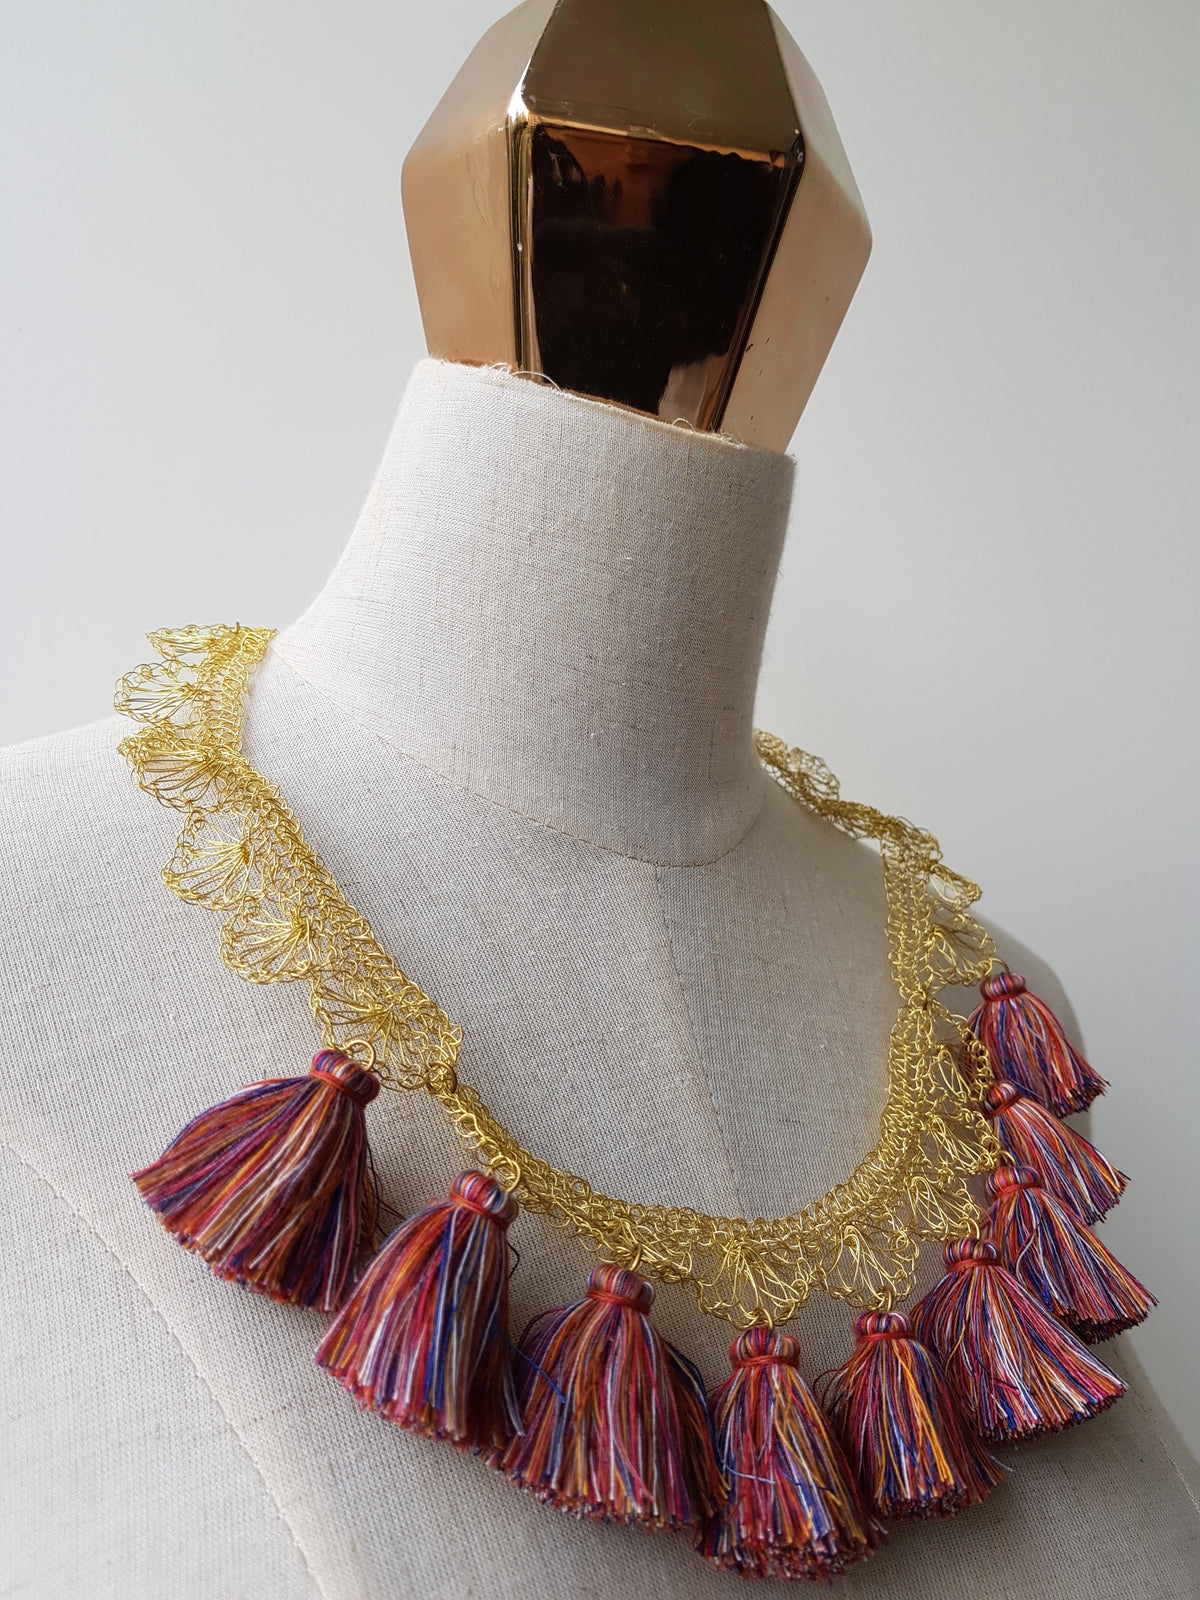 Louisa Crochet Brass Necklace (Mixed Colours-Red, Blue, Orange, White)